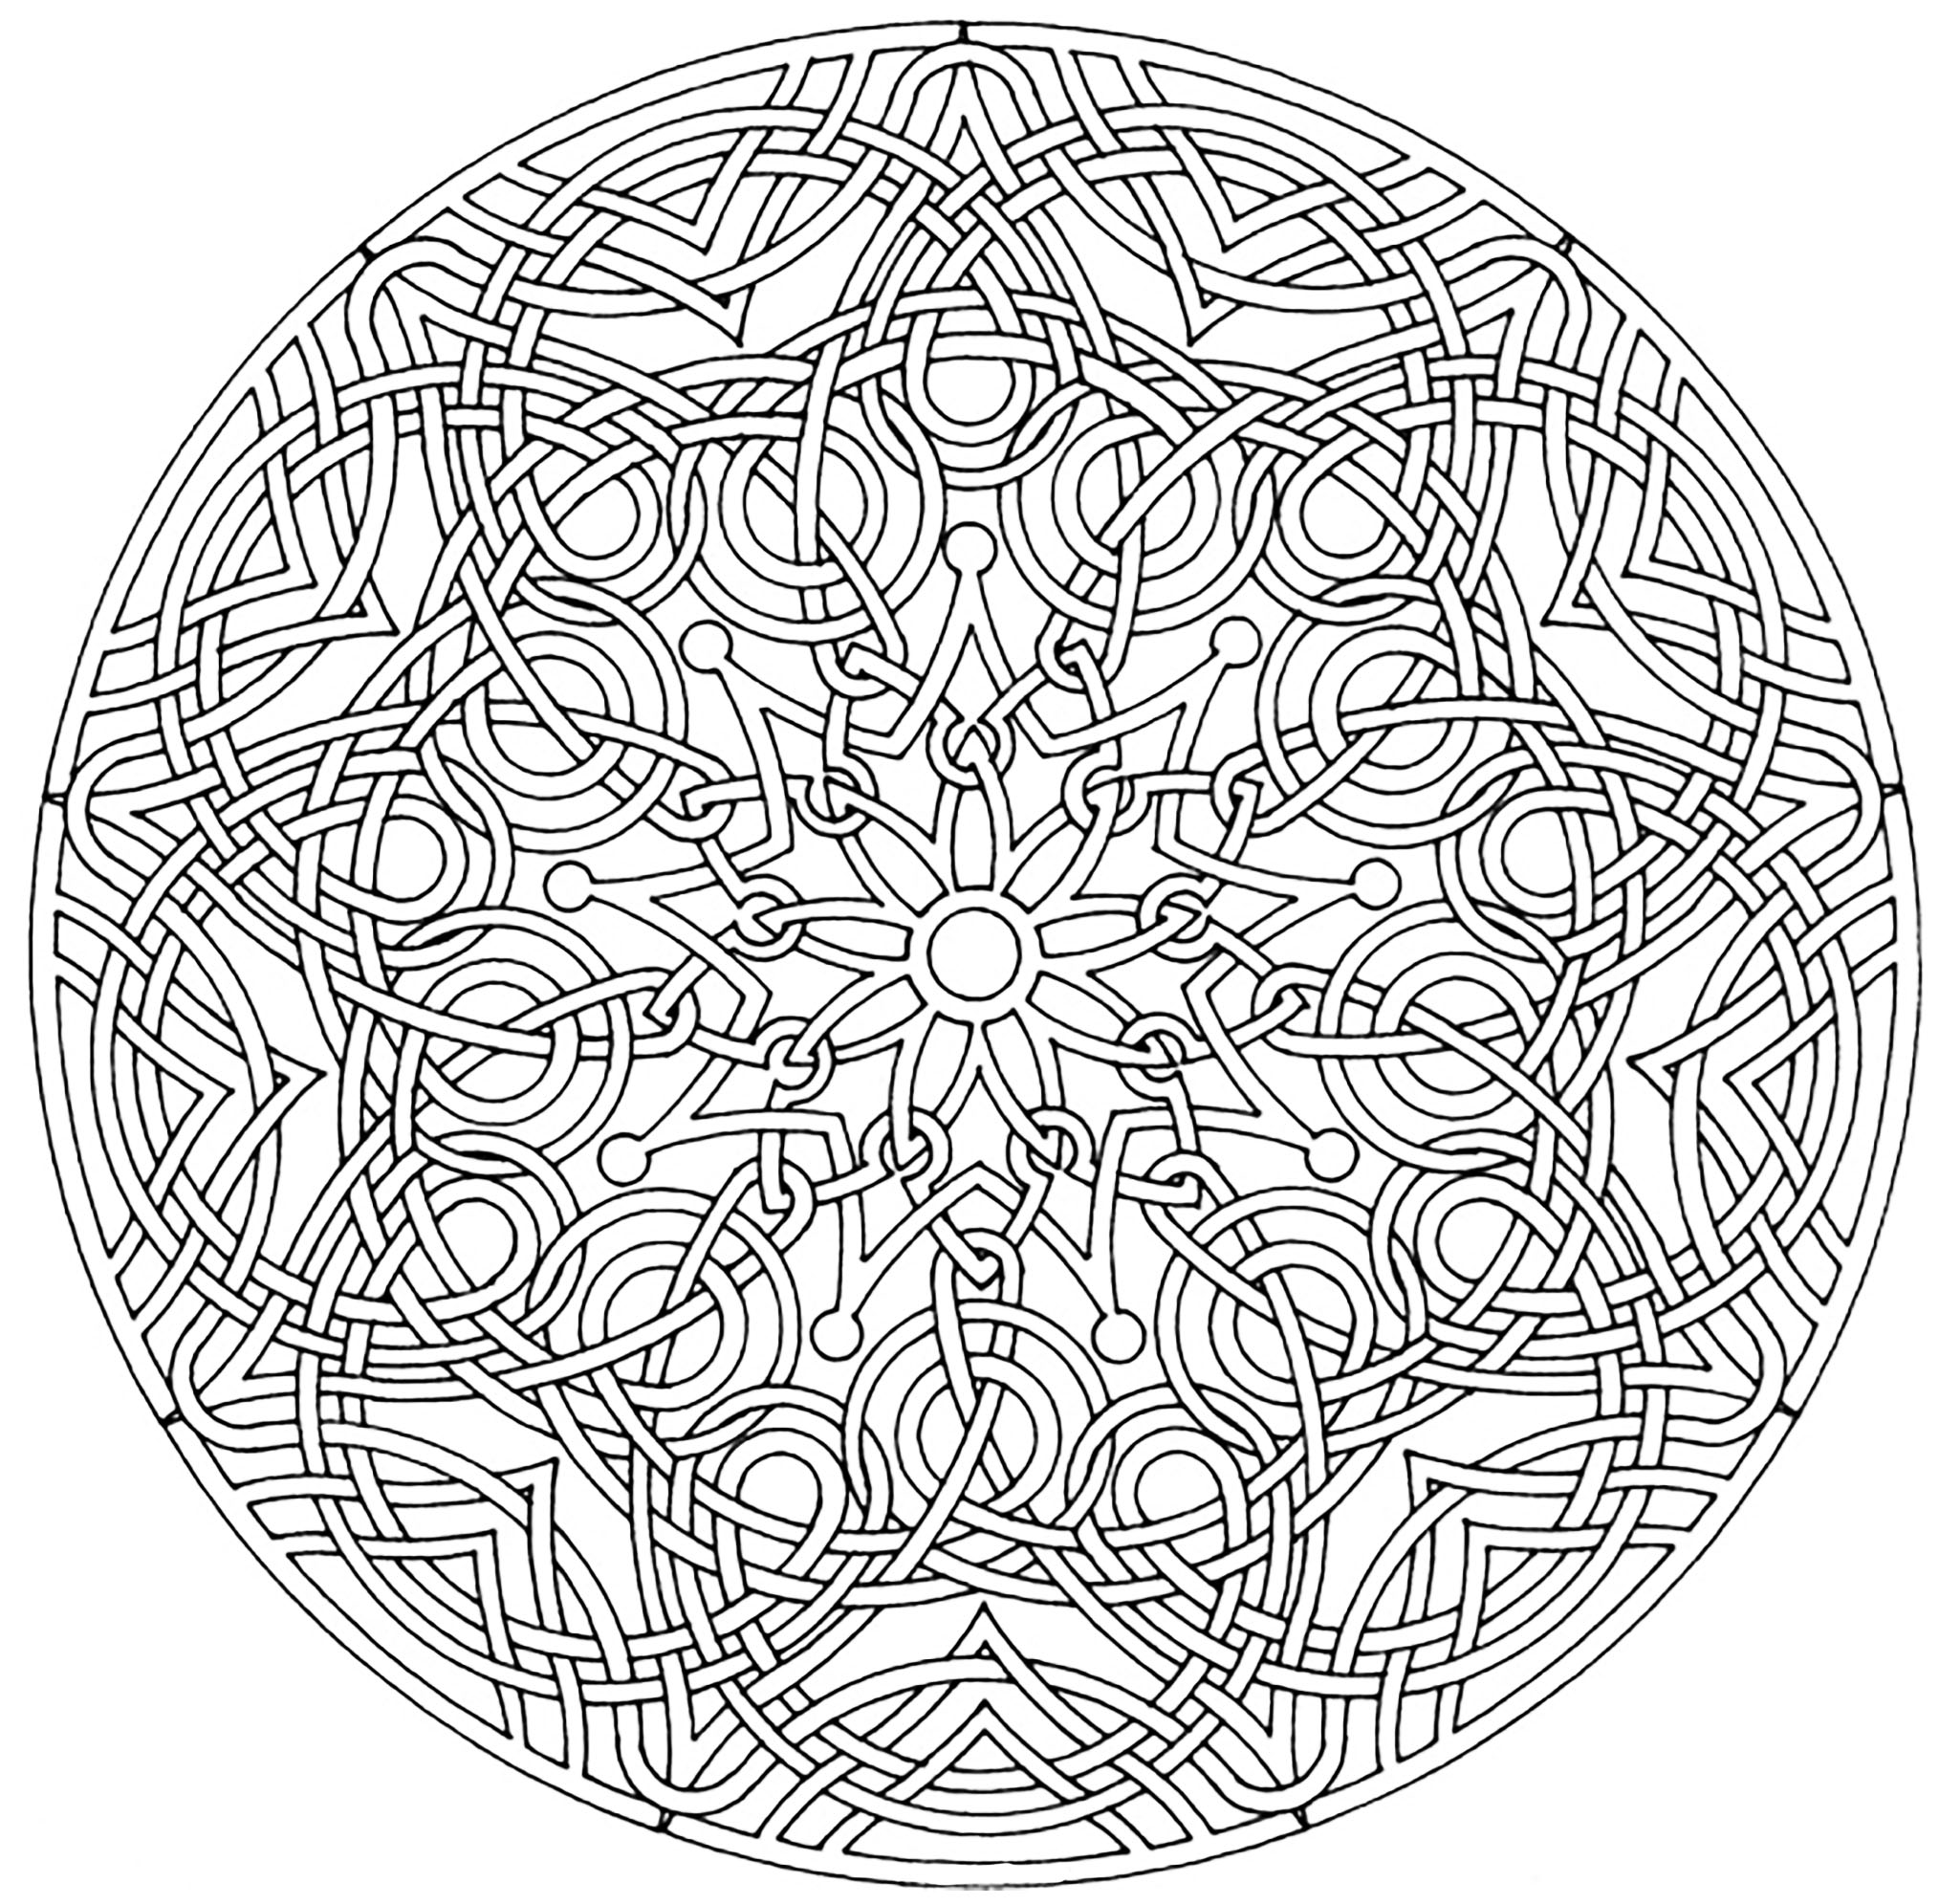 When coloring really becomes Art Therapy ... This is the case with this Mandala very harmonious and delicate. You will quickly feel the benefits of coloring. Do whatever it takes to get rid of any distractions that may interfere with your coloring.